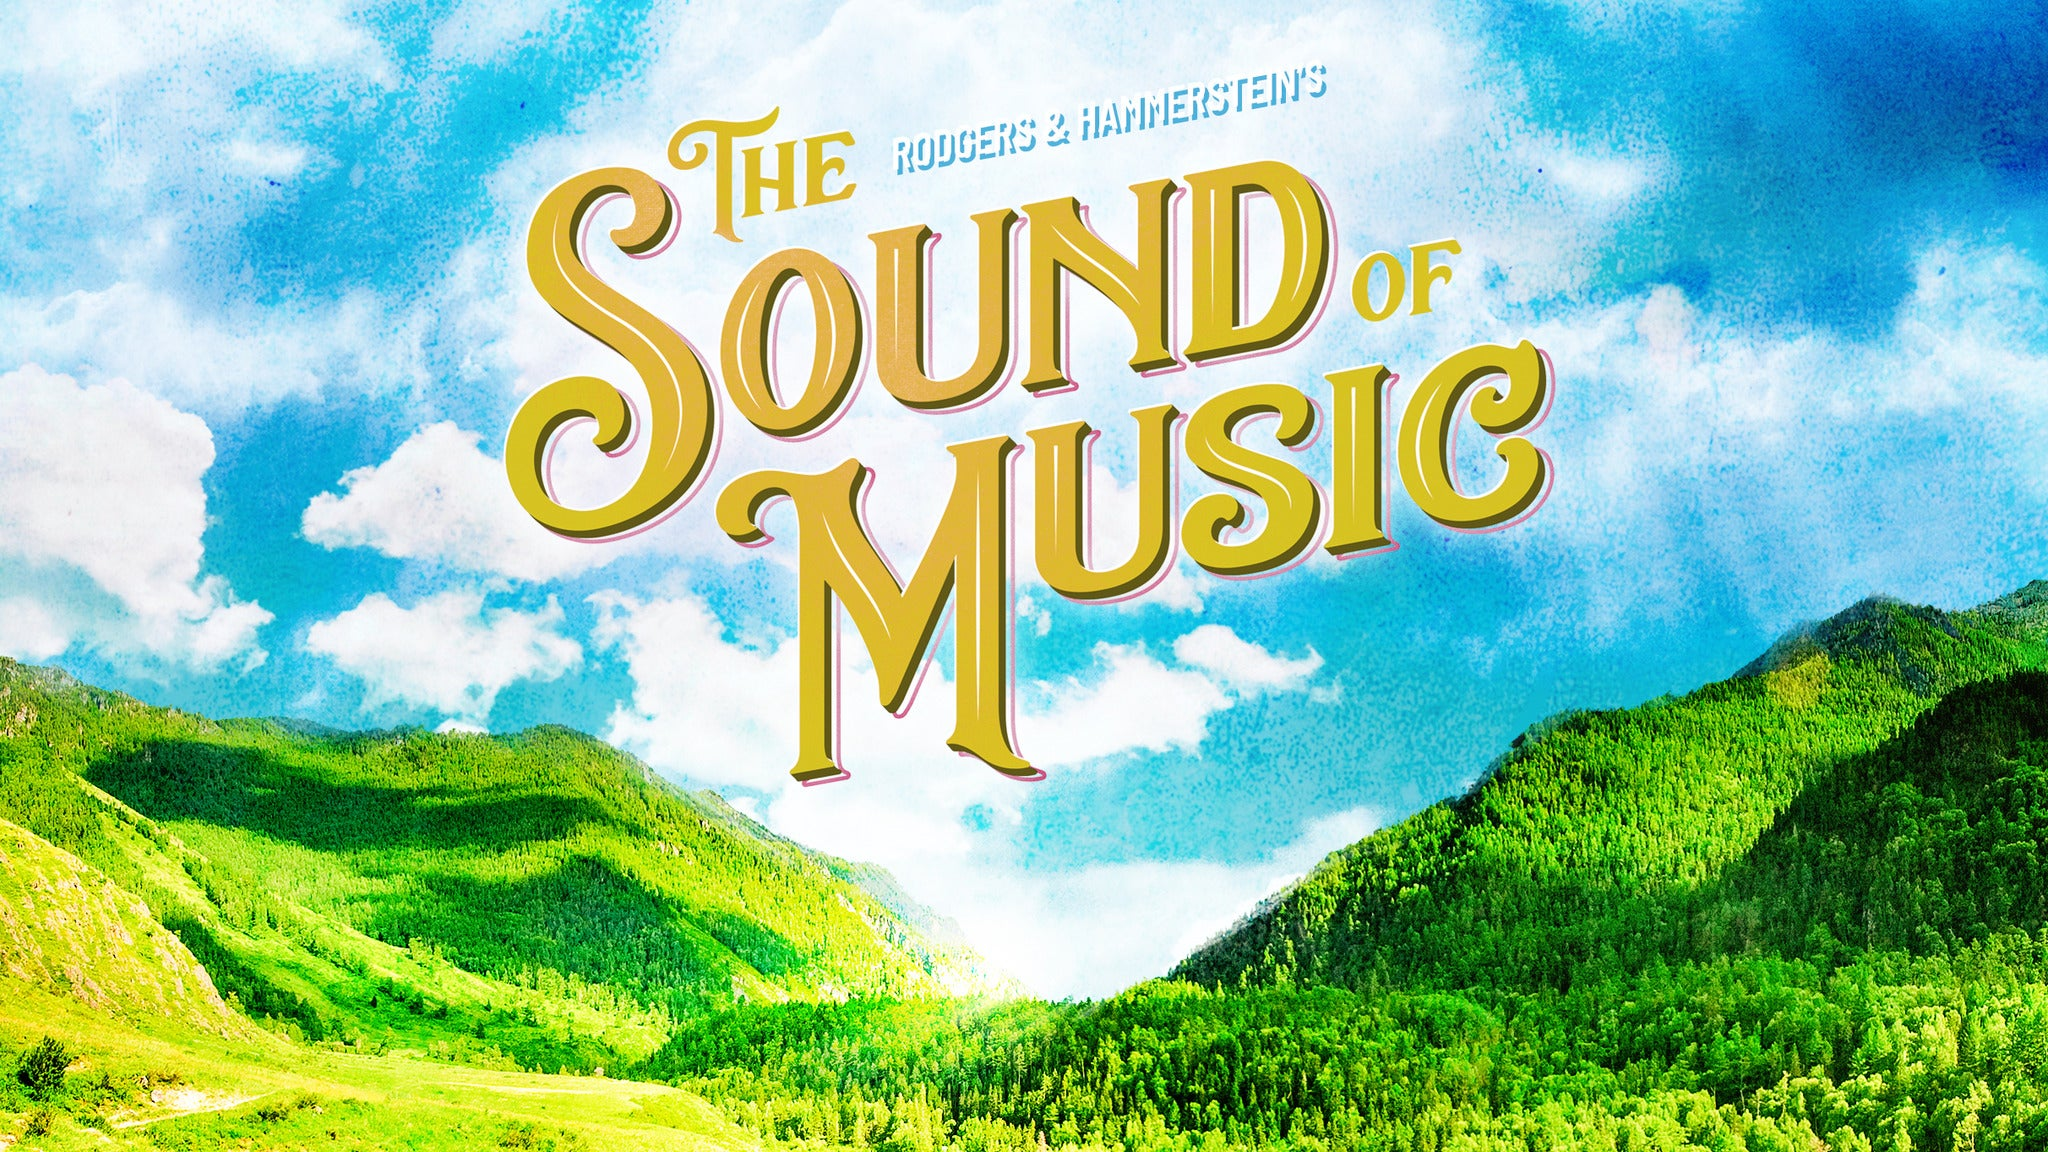 Marriott Theatre Presents: The Sound of Music